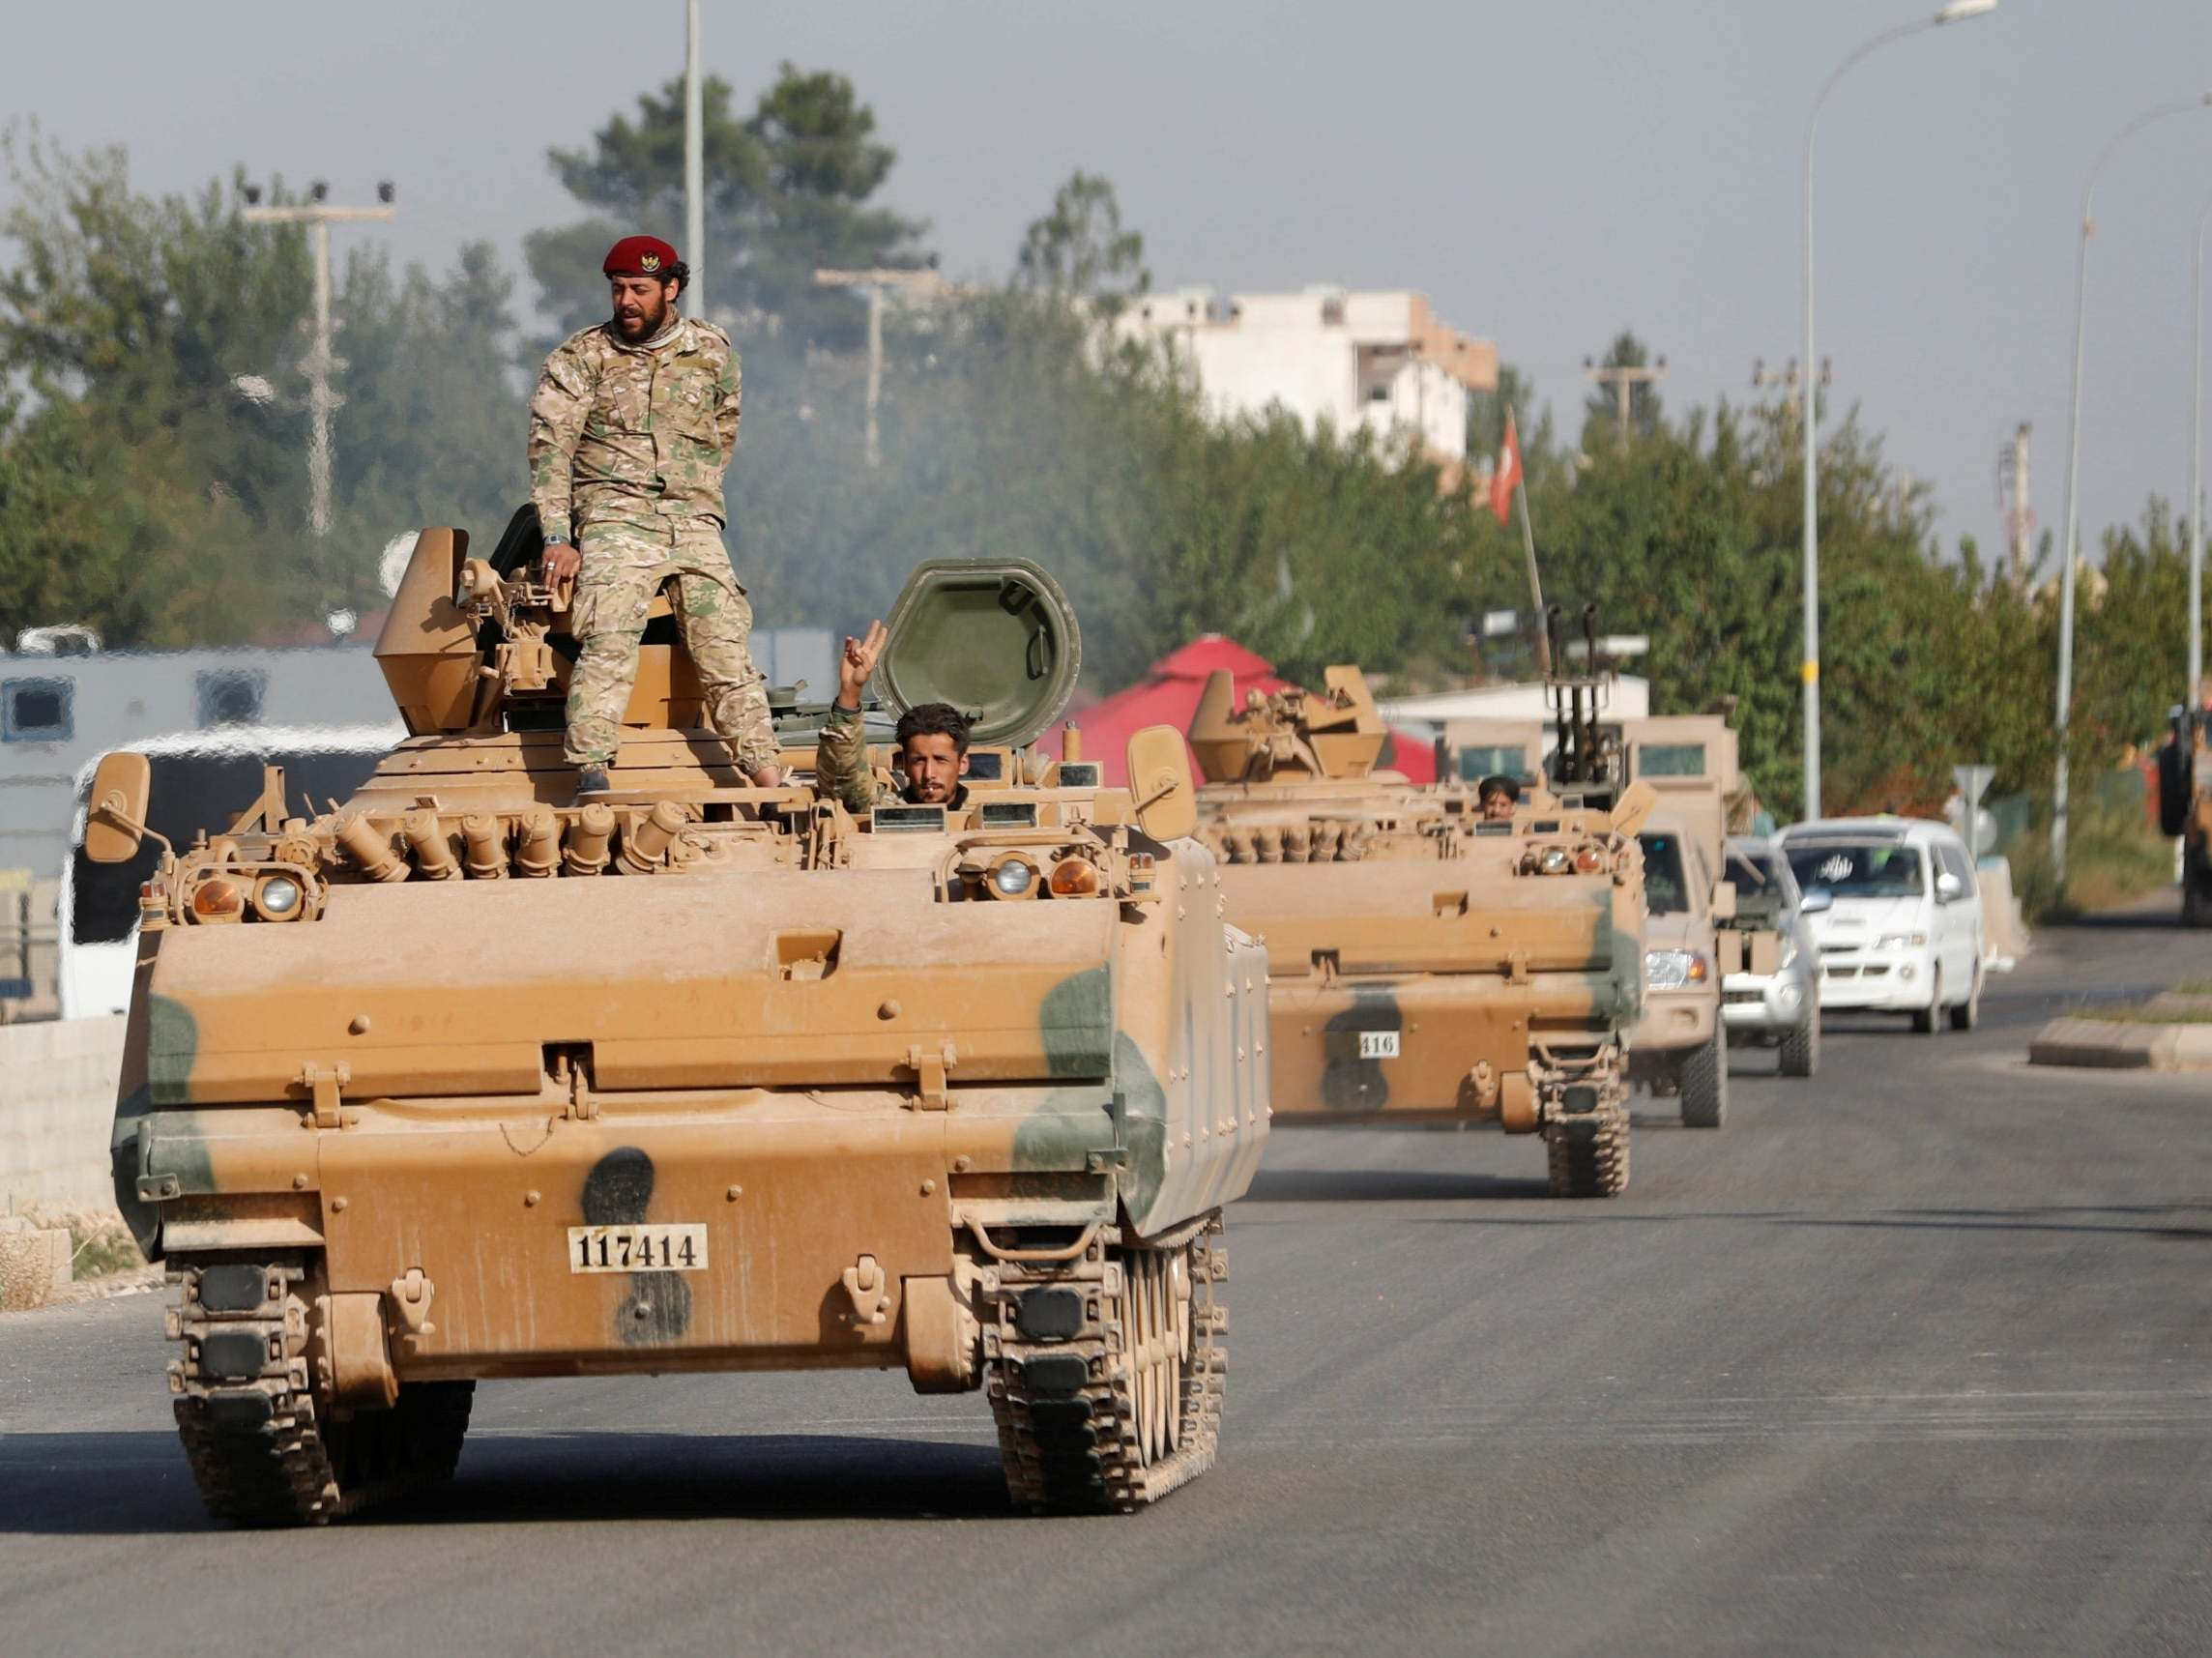 Turkey's proxy army is 'looting, kidnapping and executing Kurds at random'